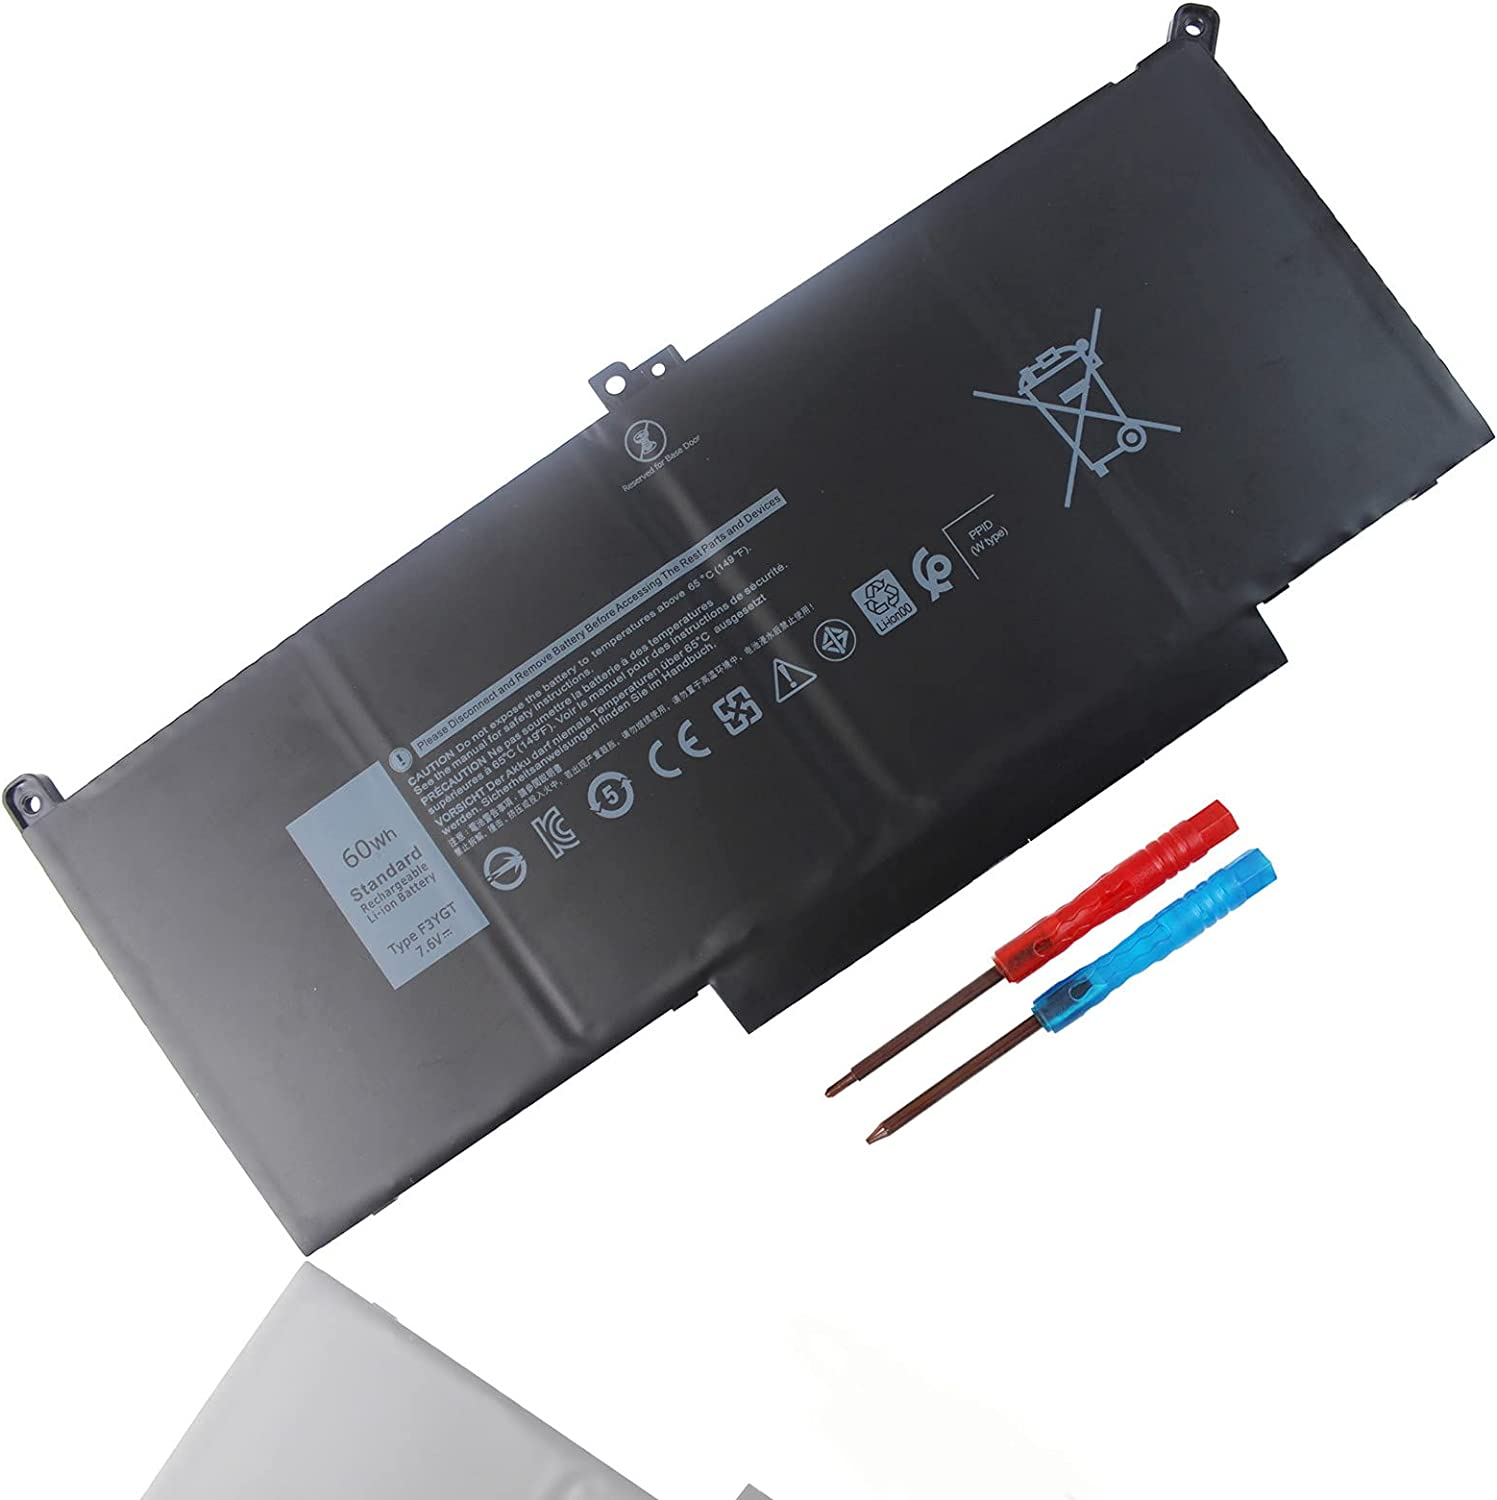 Yongerwy F3YGT Laptop Battery Compatible for Dell E7480 12 Selling Max 54% OFF E7280